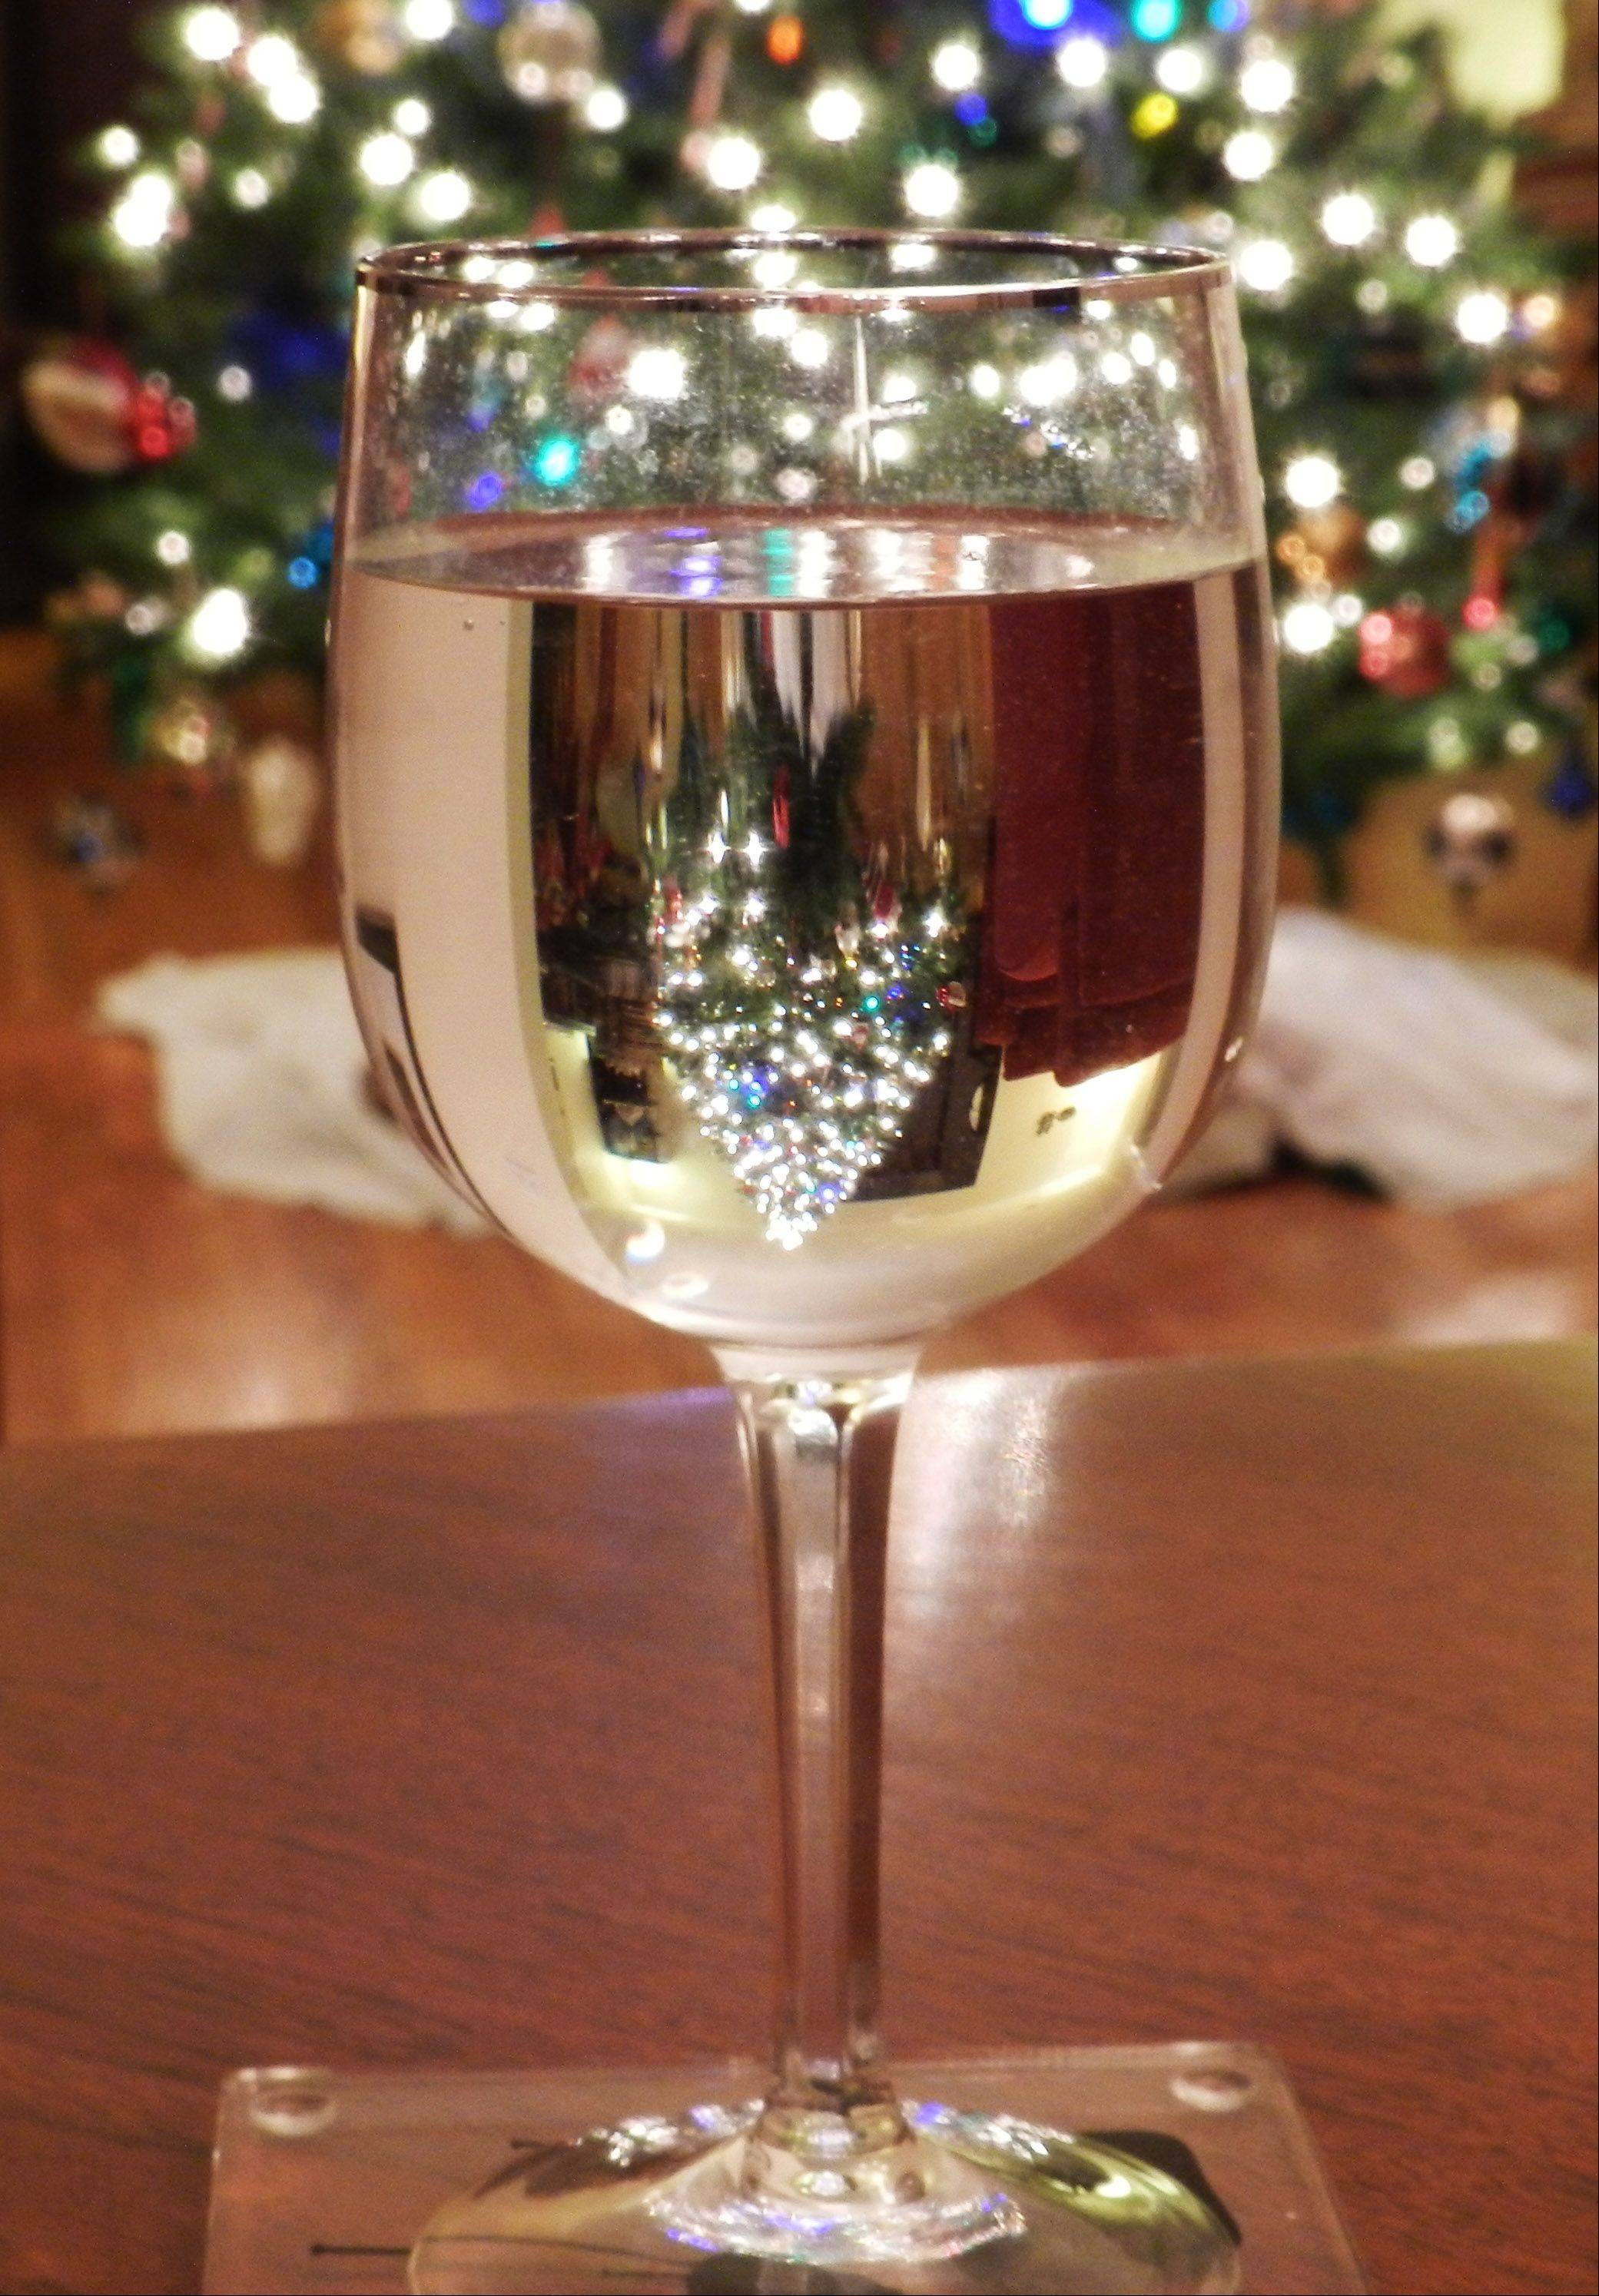 This Christmas tree through a water glass, was taken after clearing the dining room table from Christmas dinner.